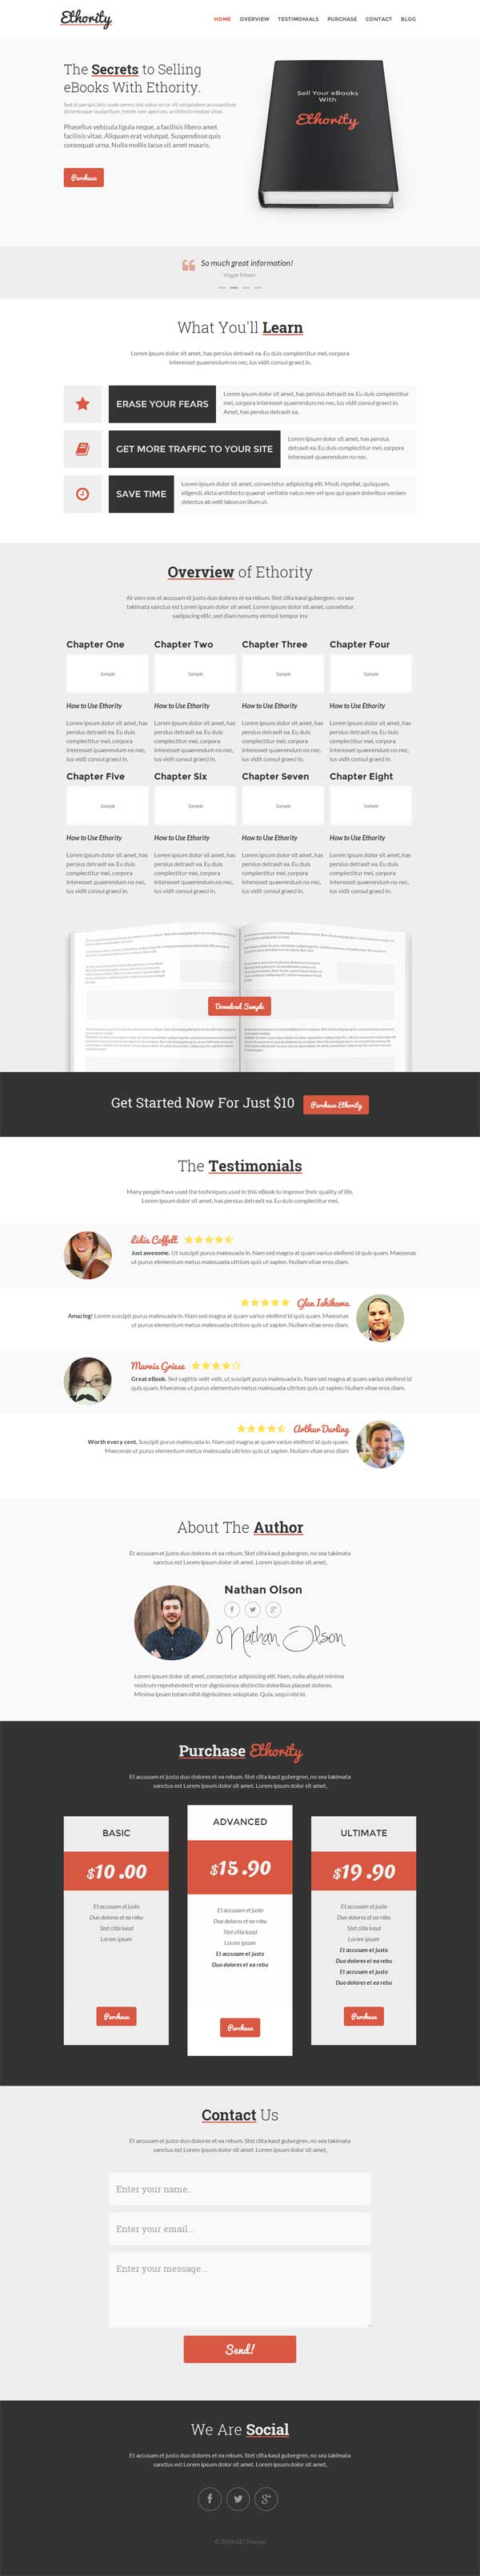 Ethority e Page eBook Landing Page HTML5 Template is a Best HTML